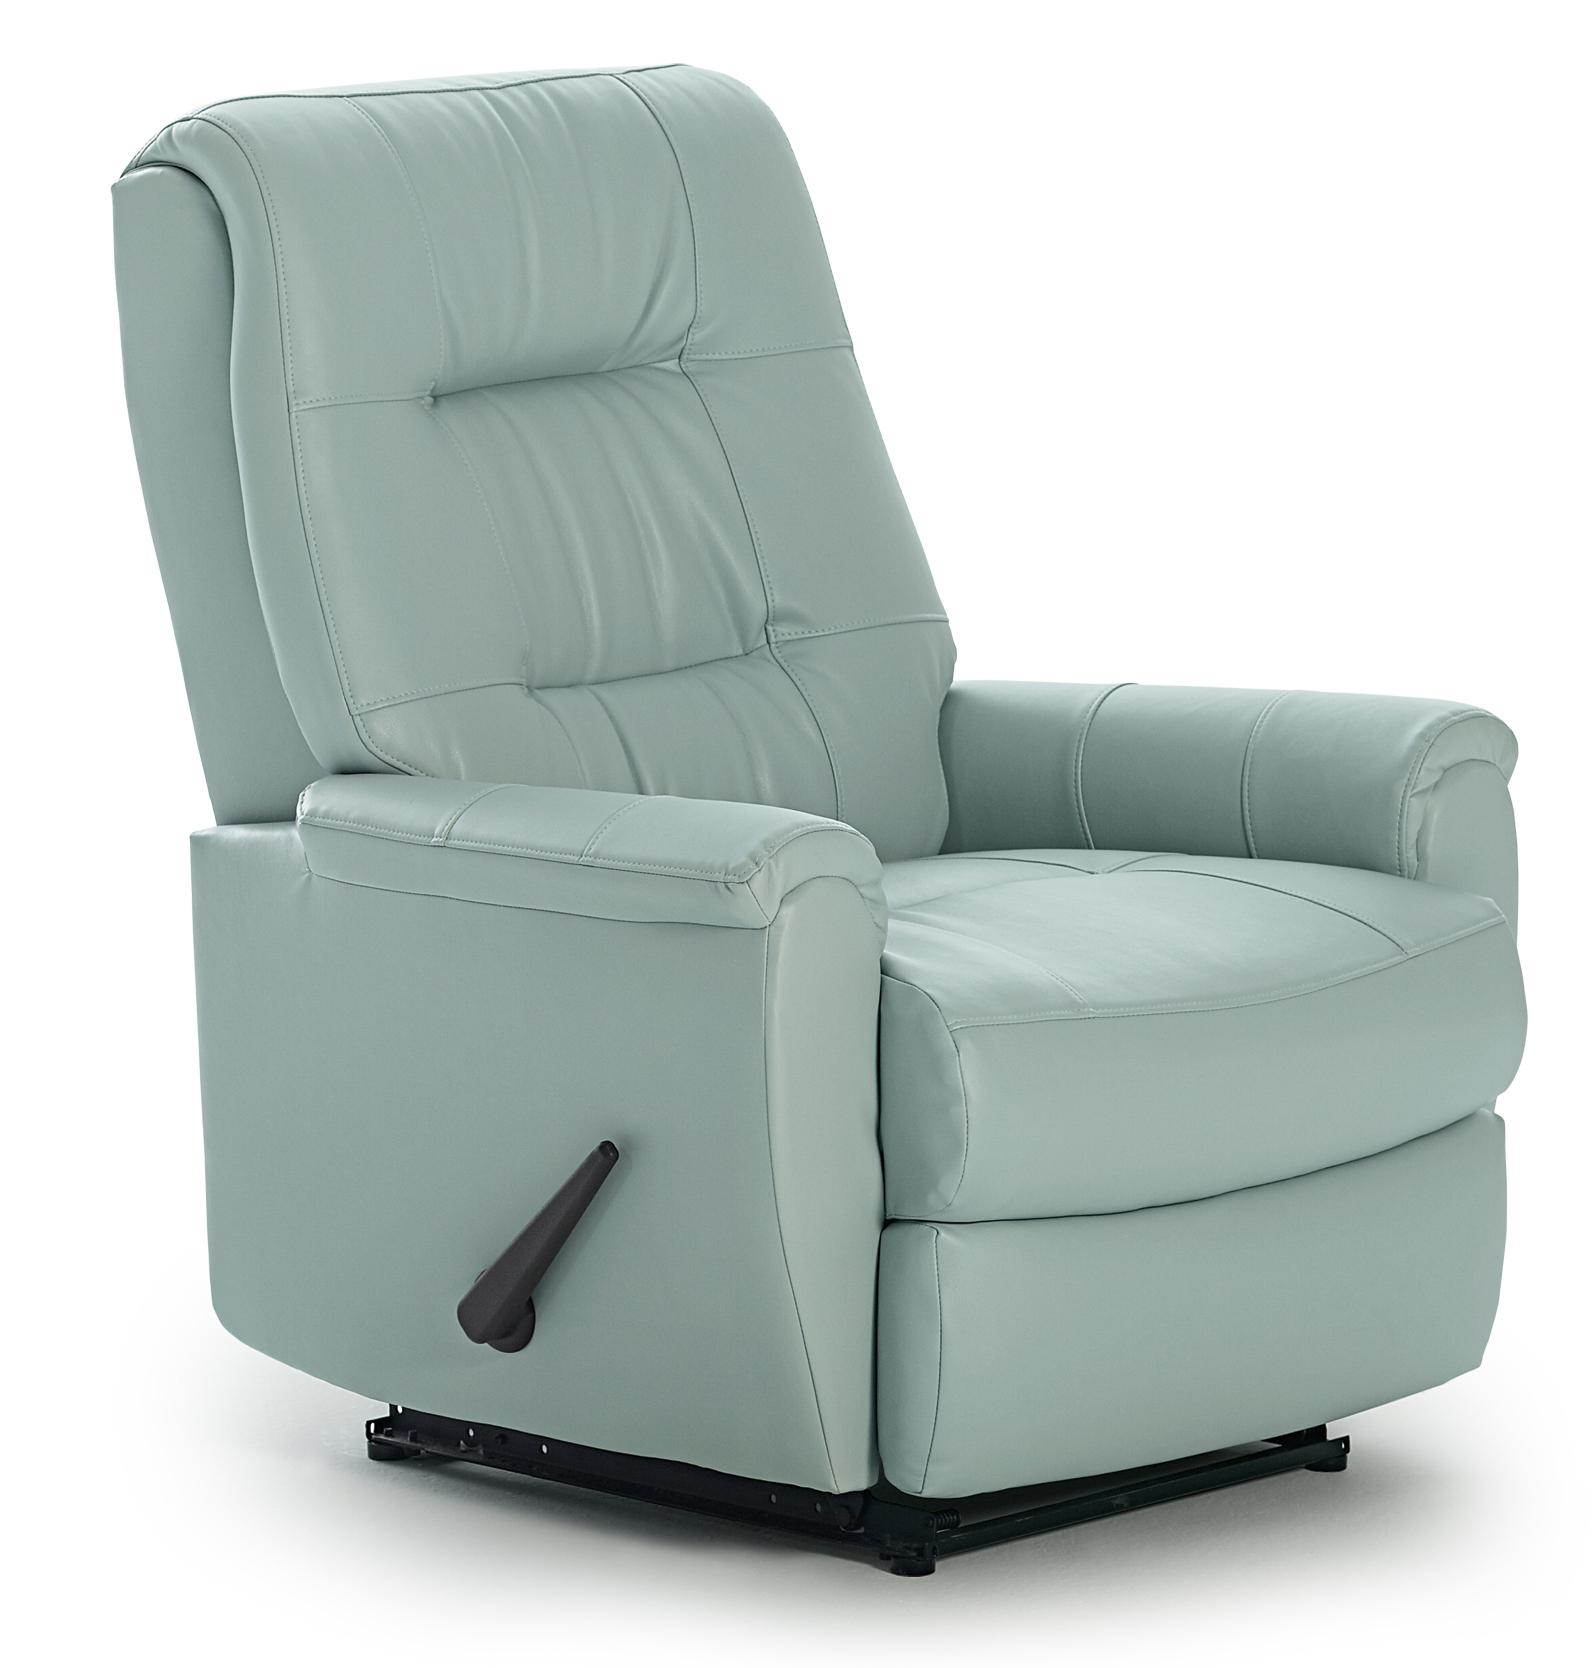 Best home furnishings recliners petite felicia swivel for Best furniture for home